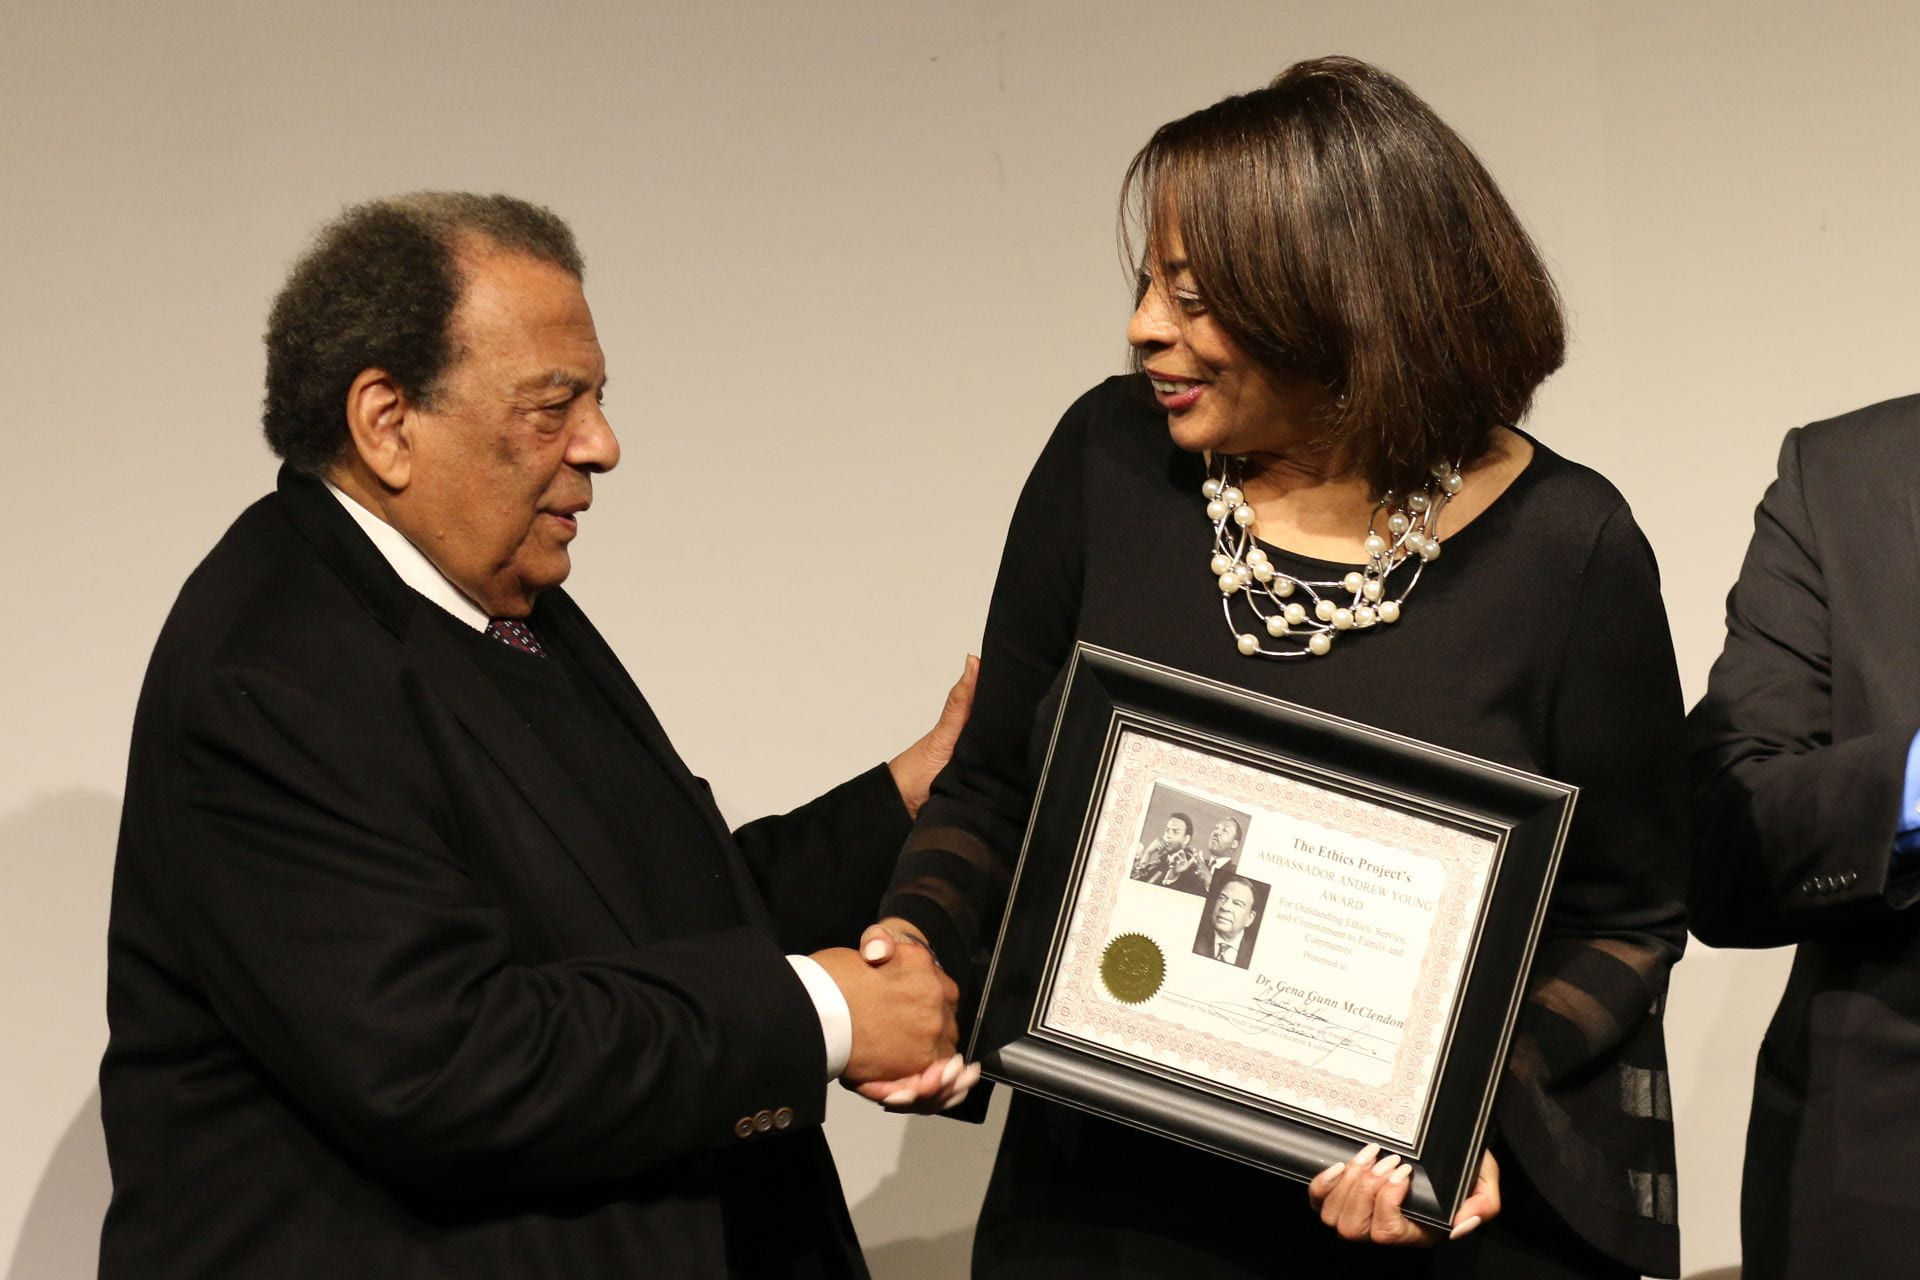 Ambassador Andrew J. Young and Dr. Gena Gunn McClendon. Photo courtesy of The Ethics Project.